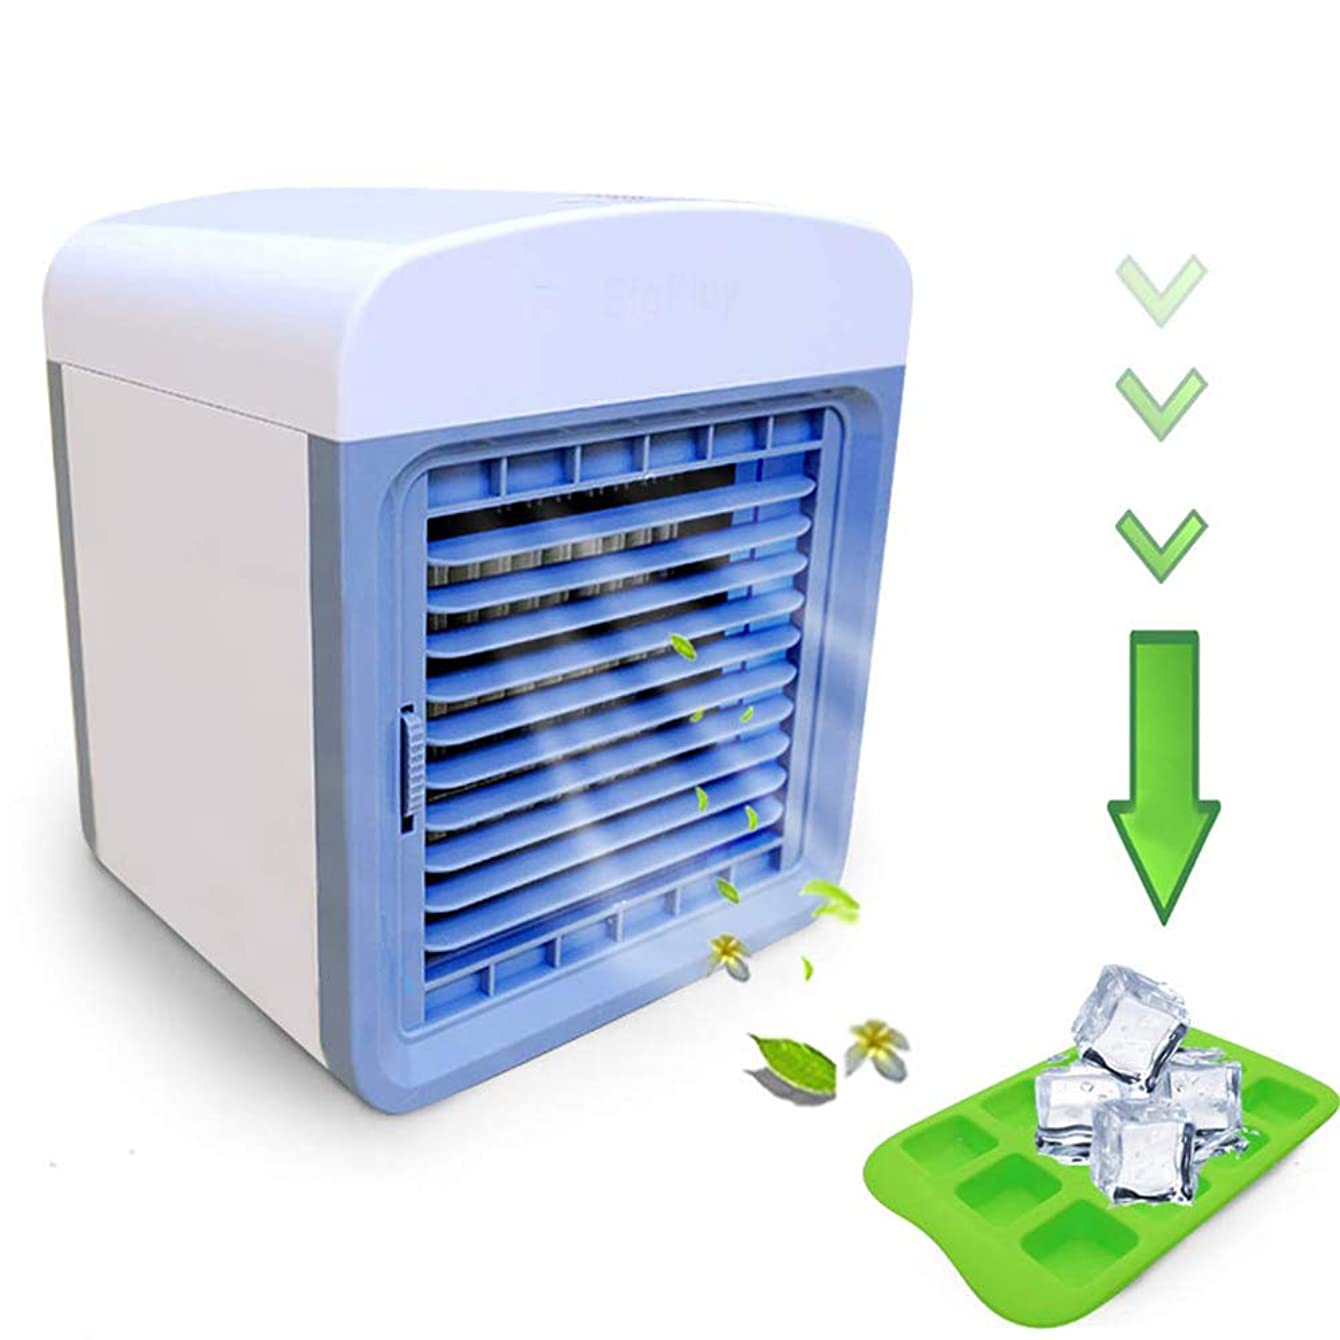 Wulidasheng Portable Air Conditioner Cooler Fan,Arctic Air Desktop Cooling Fan Evaporative Air Cooler Conditioner for Home Room Office, Mini Desk Fan White